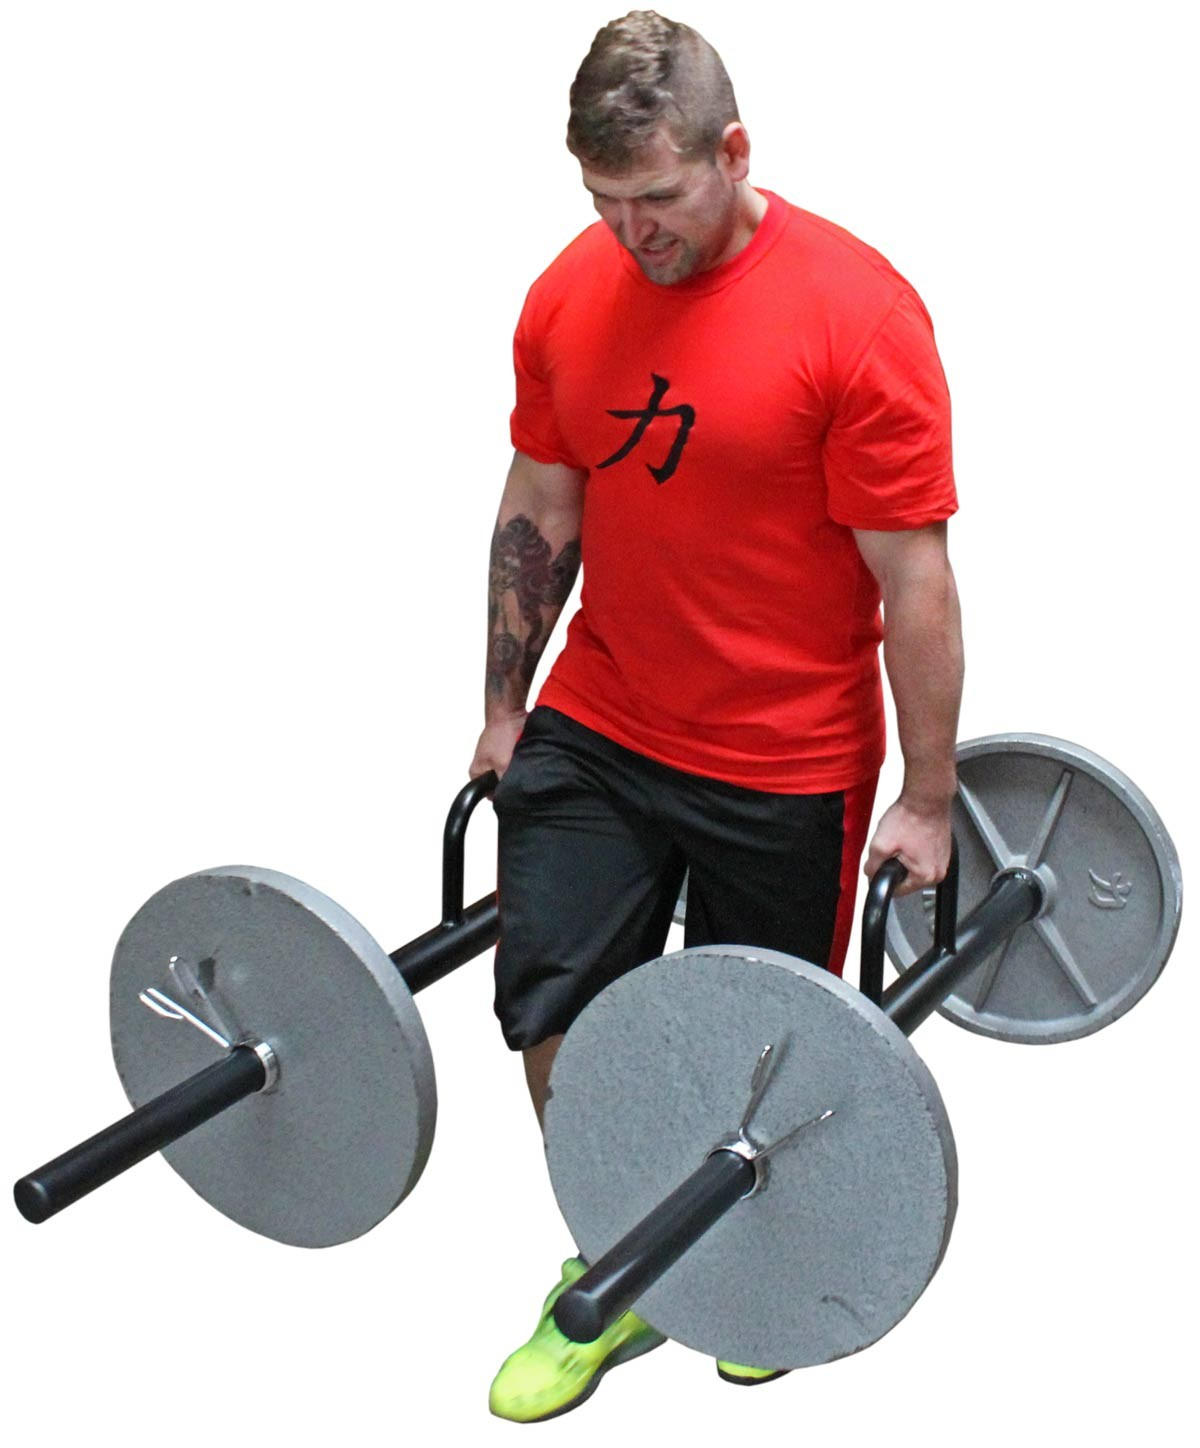 Image by StrengthShop.co.uk